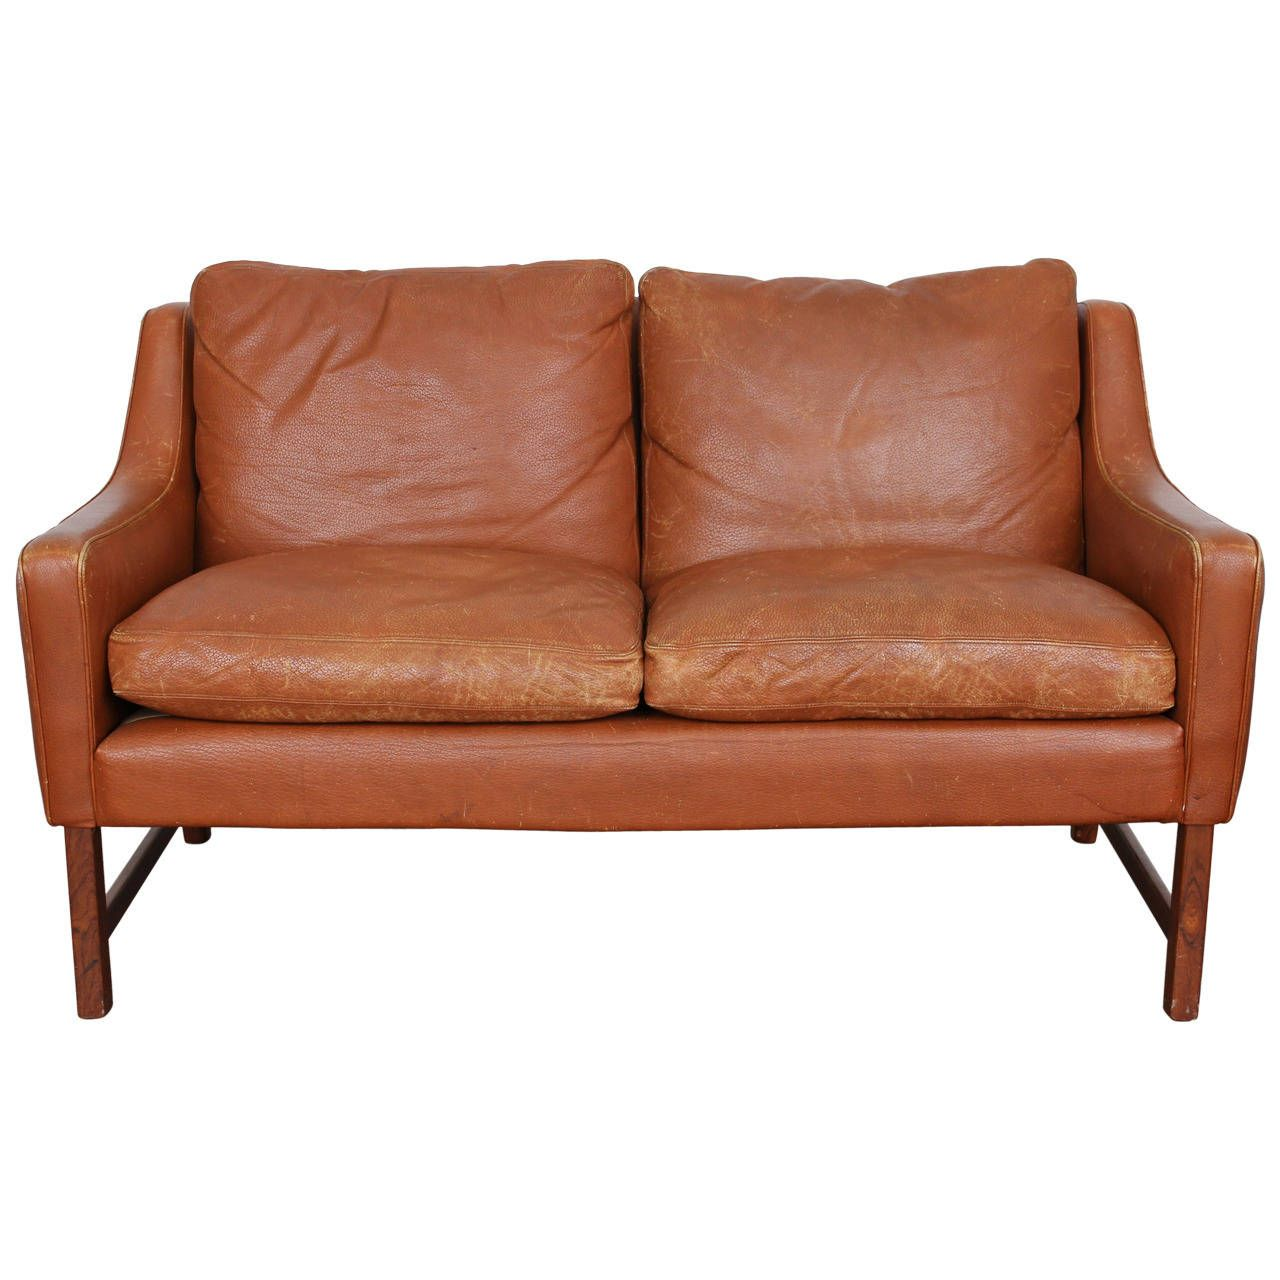 and fascinating under of www strong tufted couch reference sofa unique uncategorized loveseats loveseat